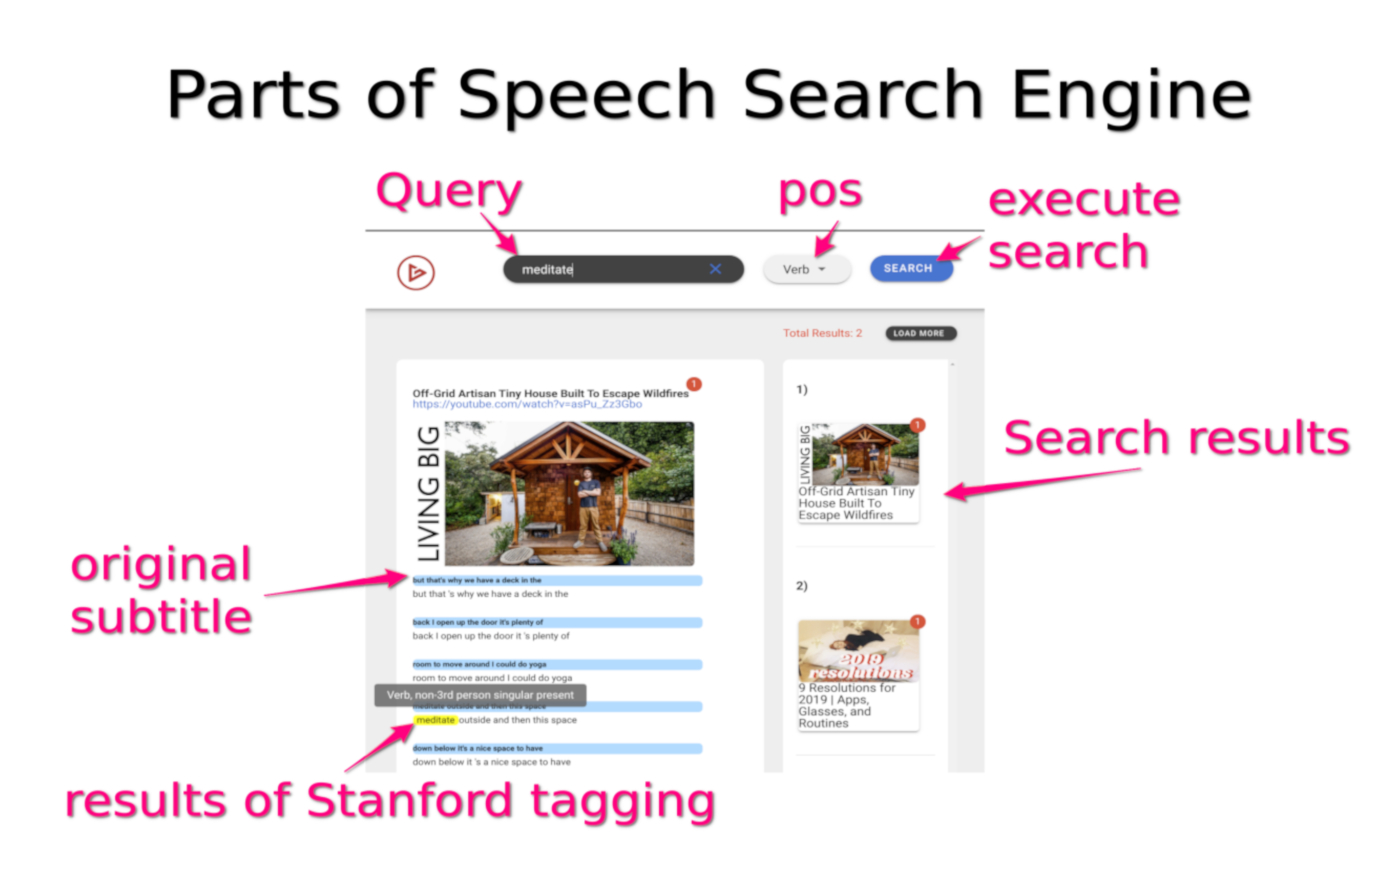 Parts of Speech Search Engine